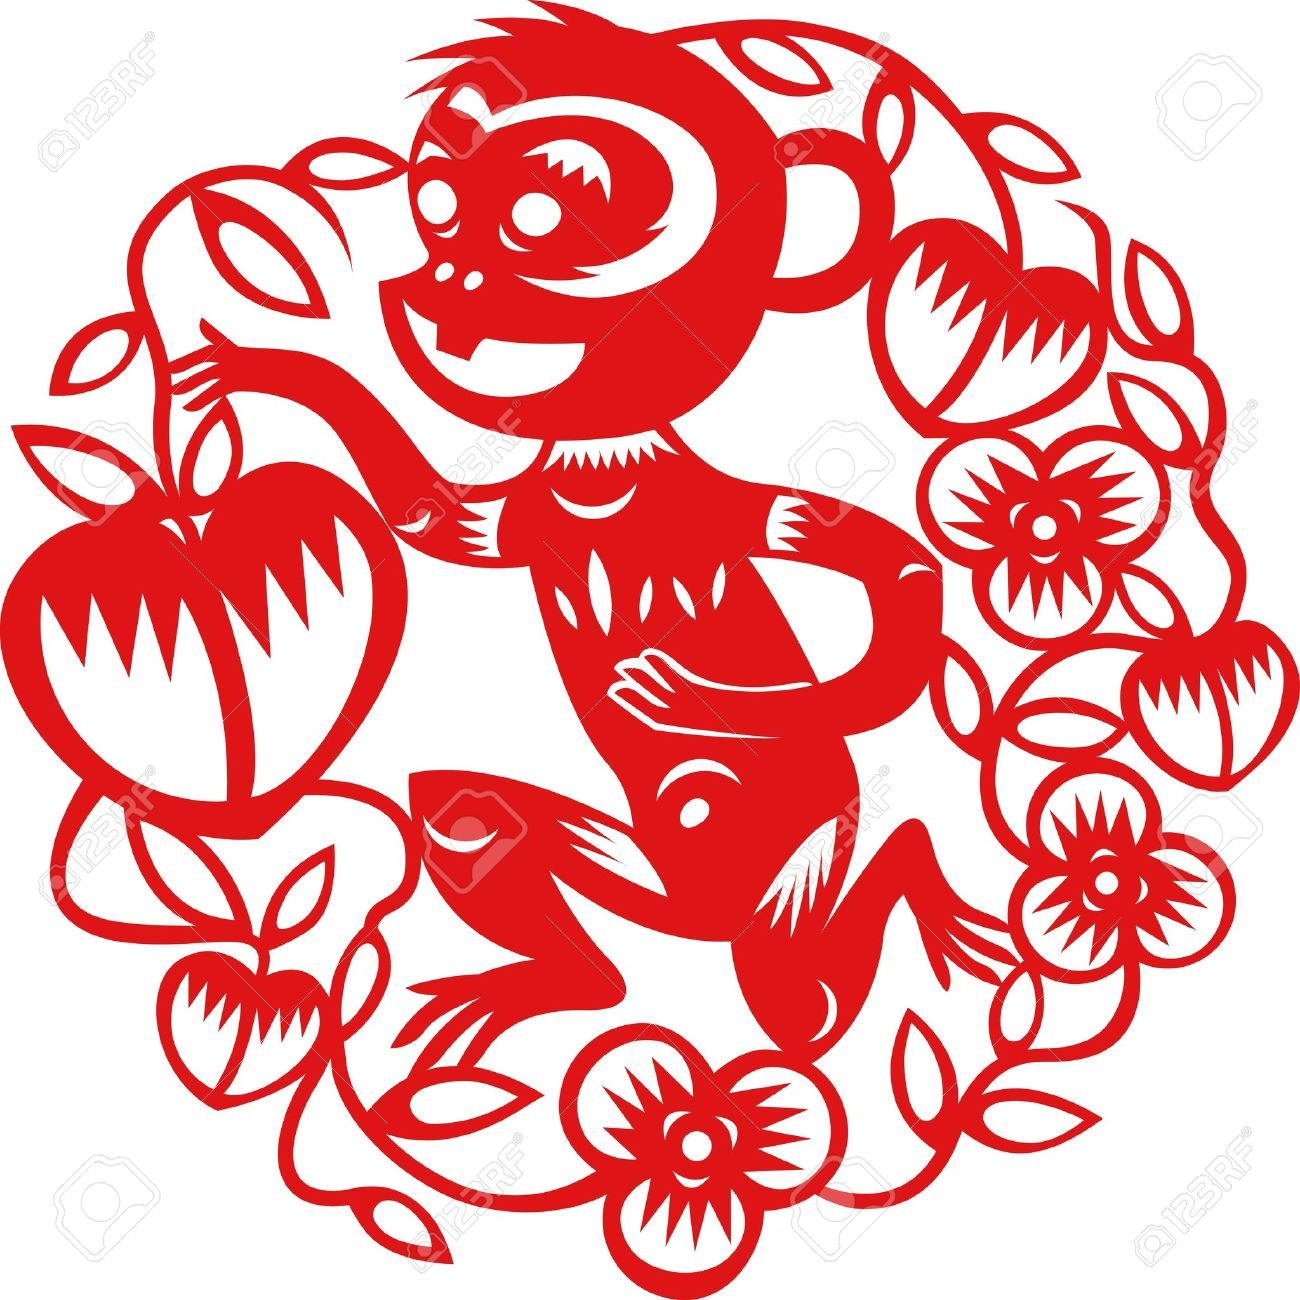 Chinese new year image clipart year of monkey clip transparent download Related image | 3rd Grade Art Lessons | Chinese paper cutting ... clip transparent download